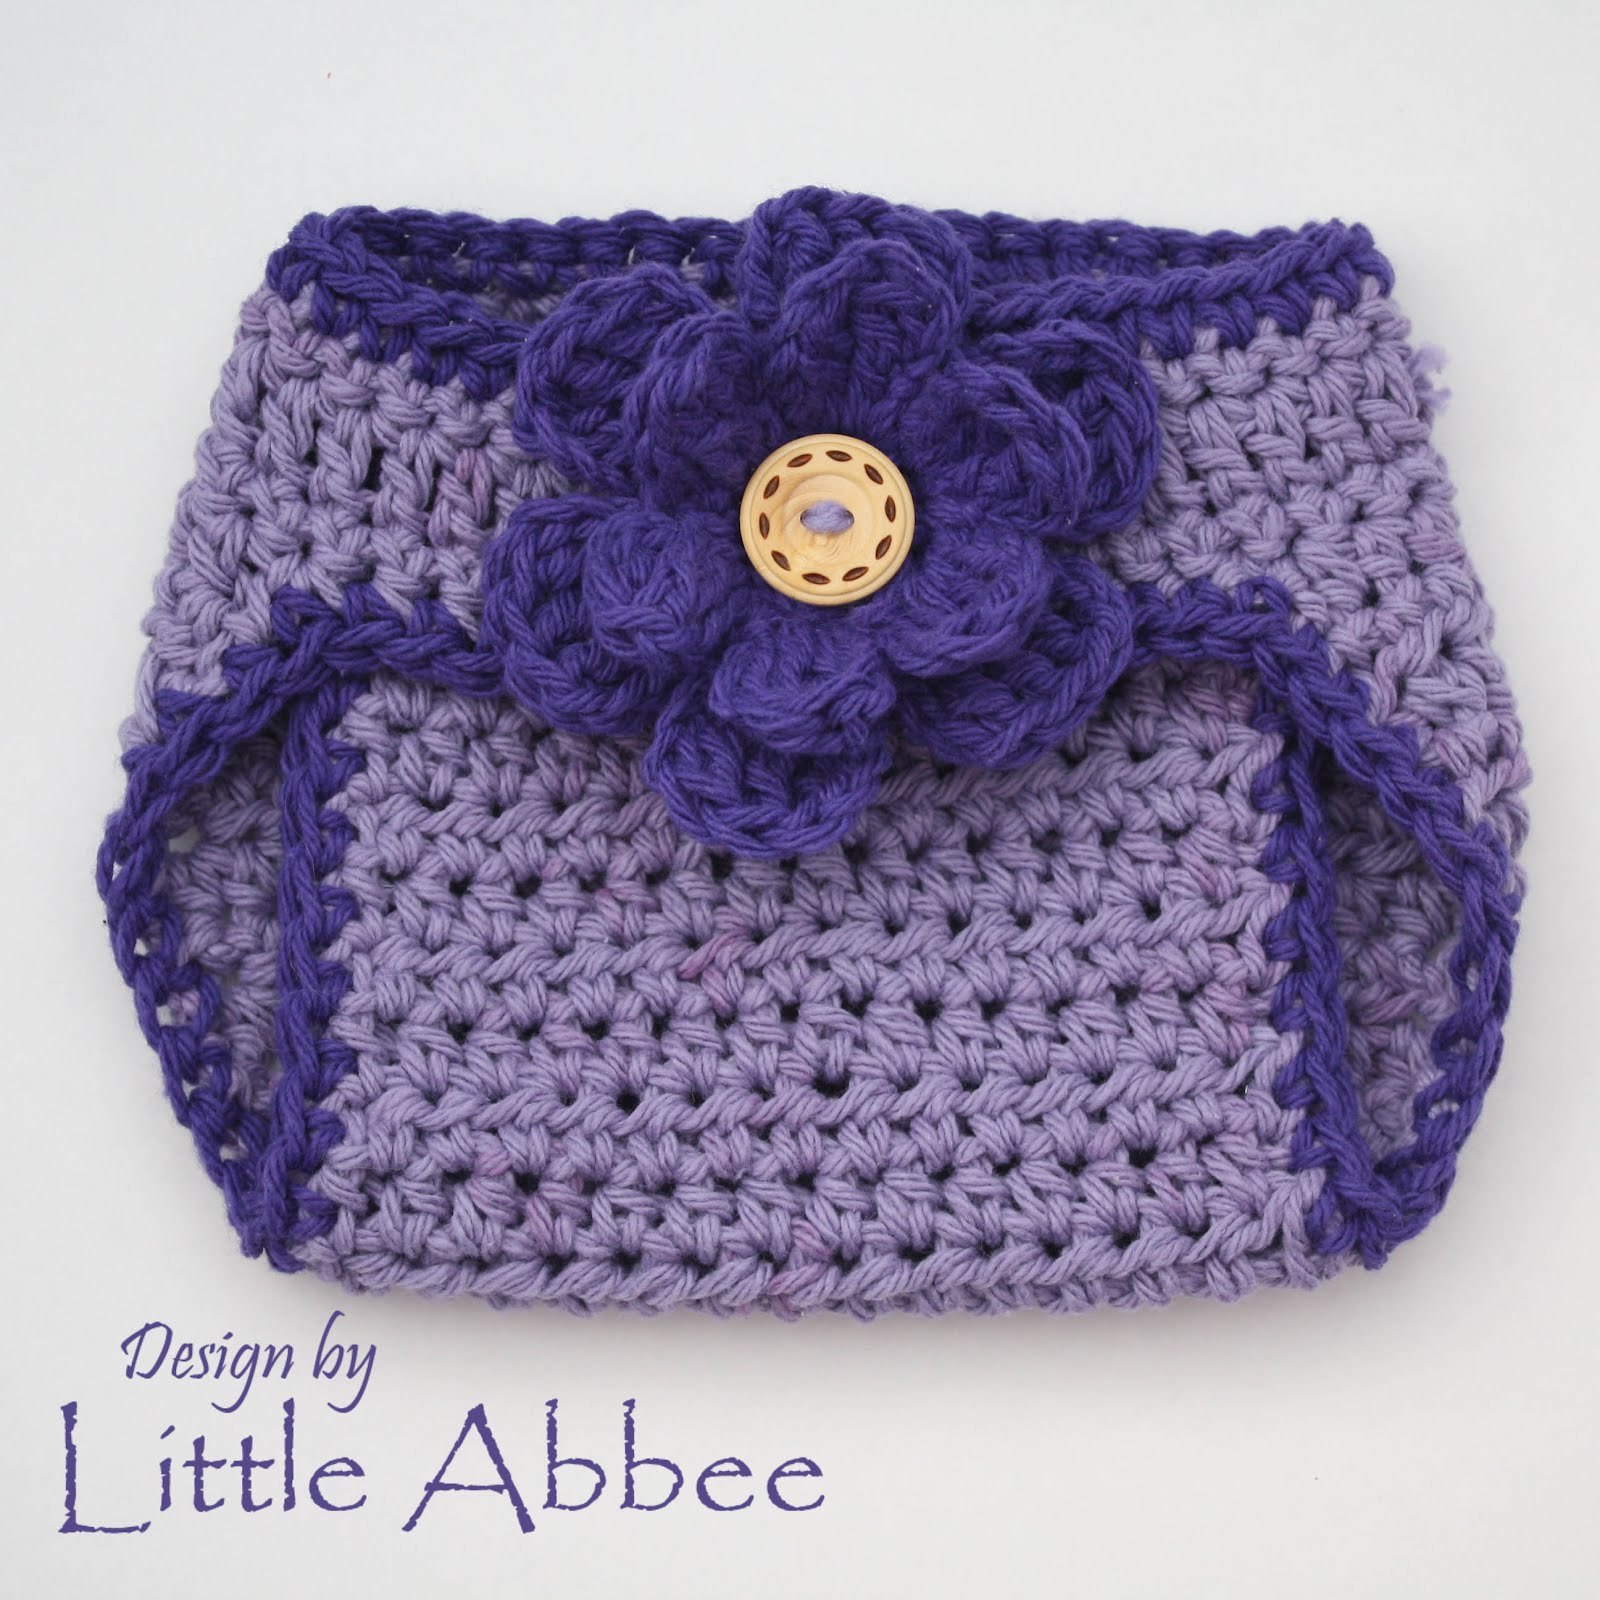 Diaper Cover Crochet Pattern